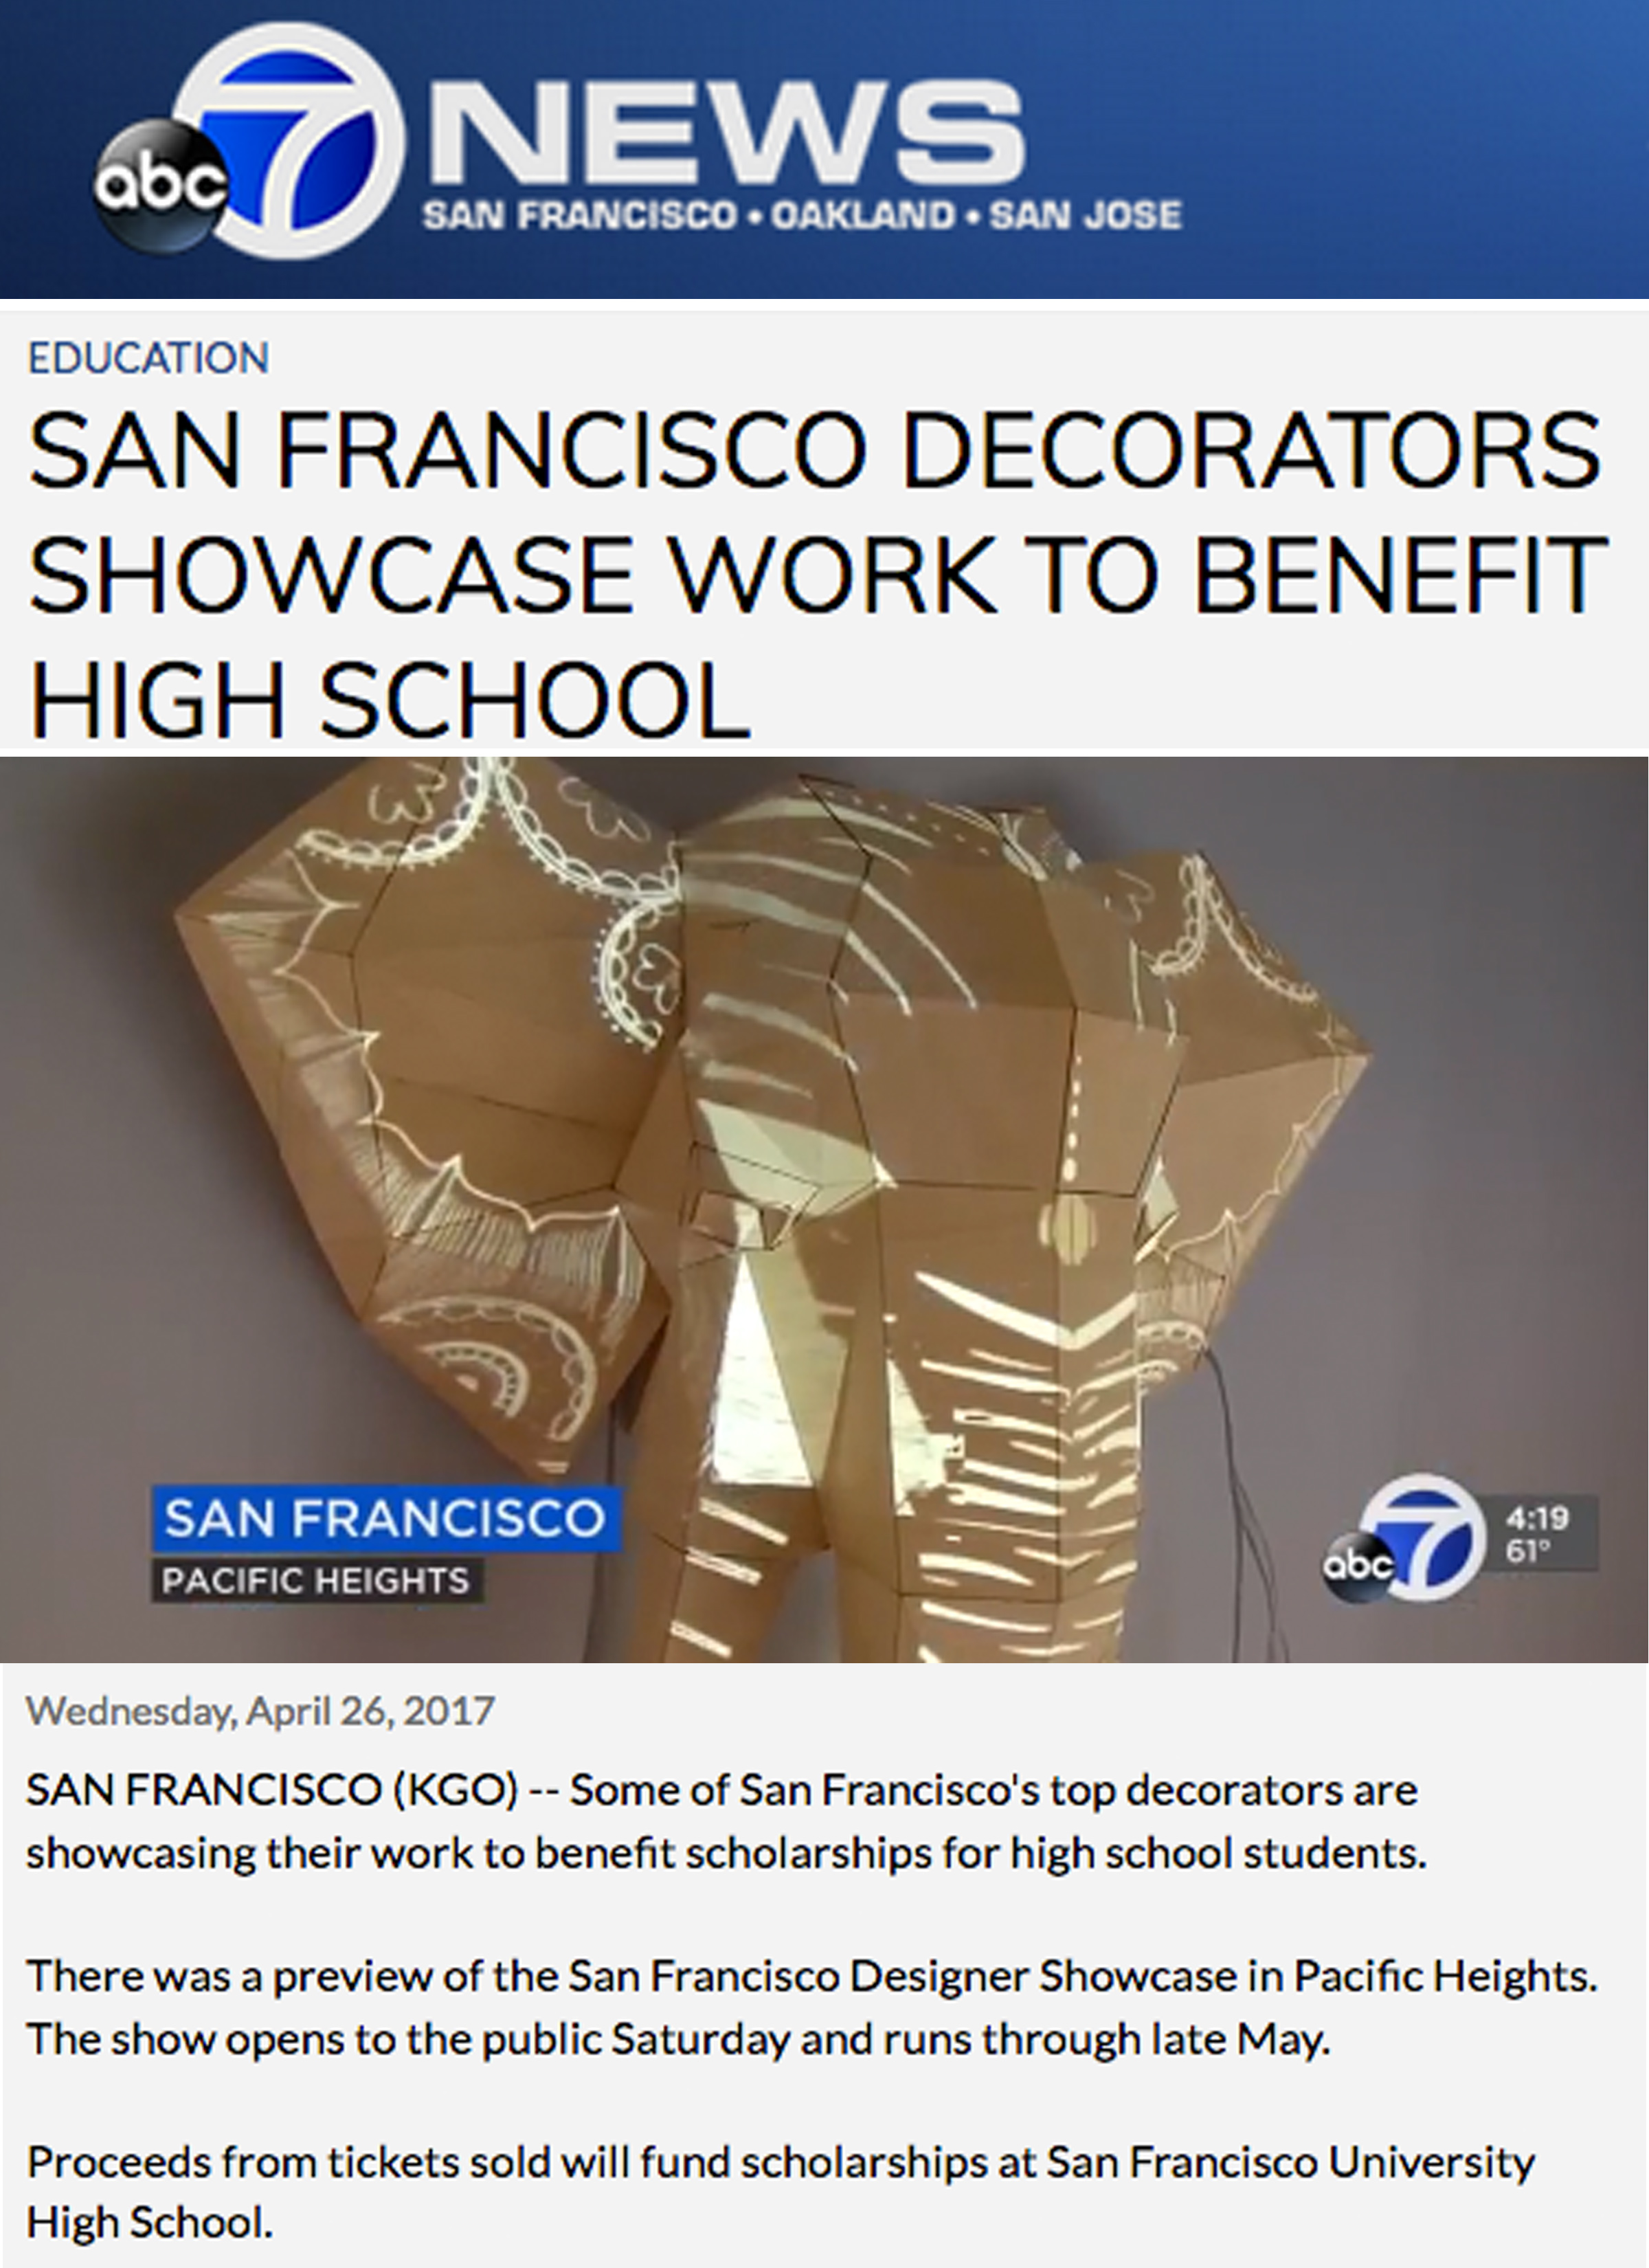 ABC 7 News - Our Elephant Light illuminates the 2017 SF Decorator Showcase. Link: http://abc7ne.ws/2pyYMwm